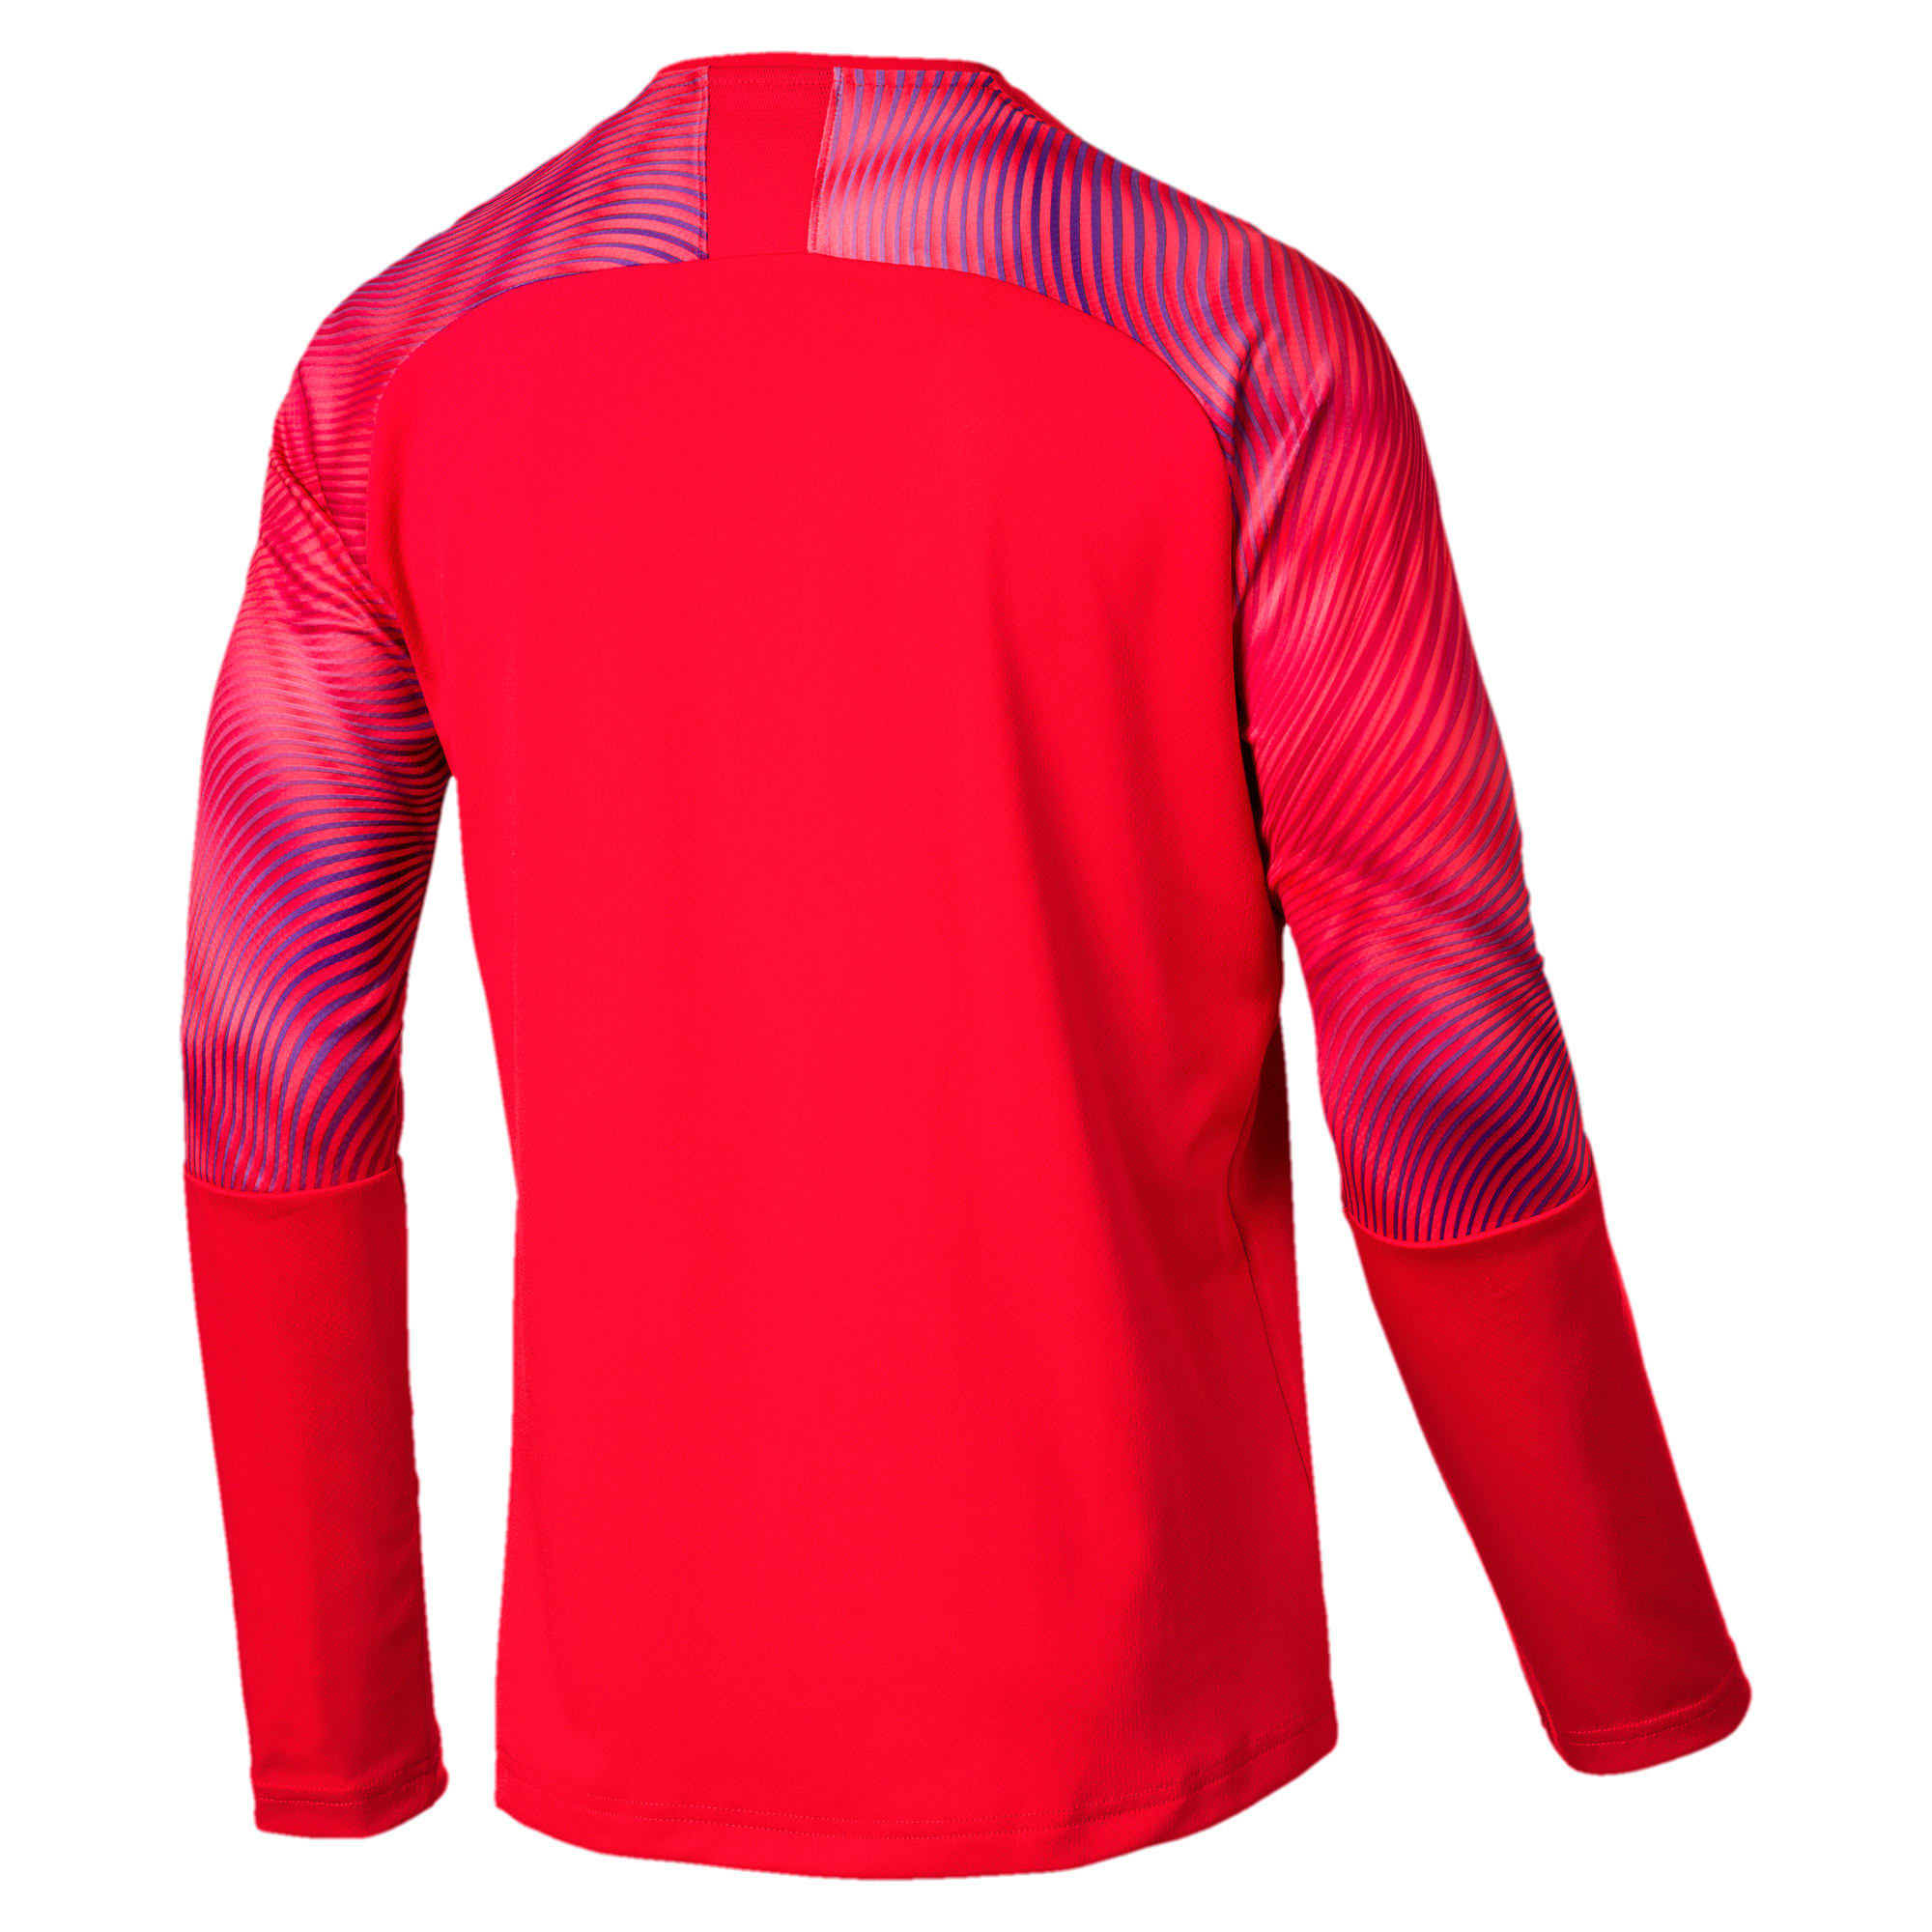 Thumbnail 2 of Olympique de Marseille Men's Replica Goalkeeper Jersey, Puma Red, medium